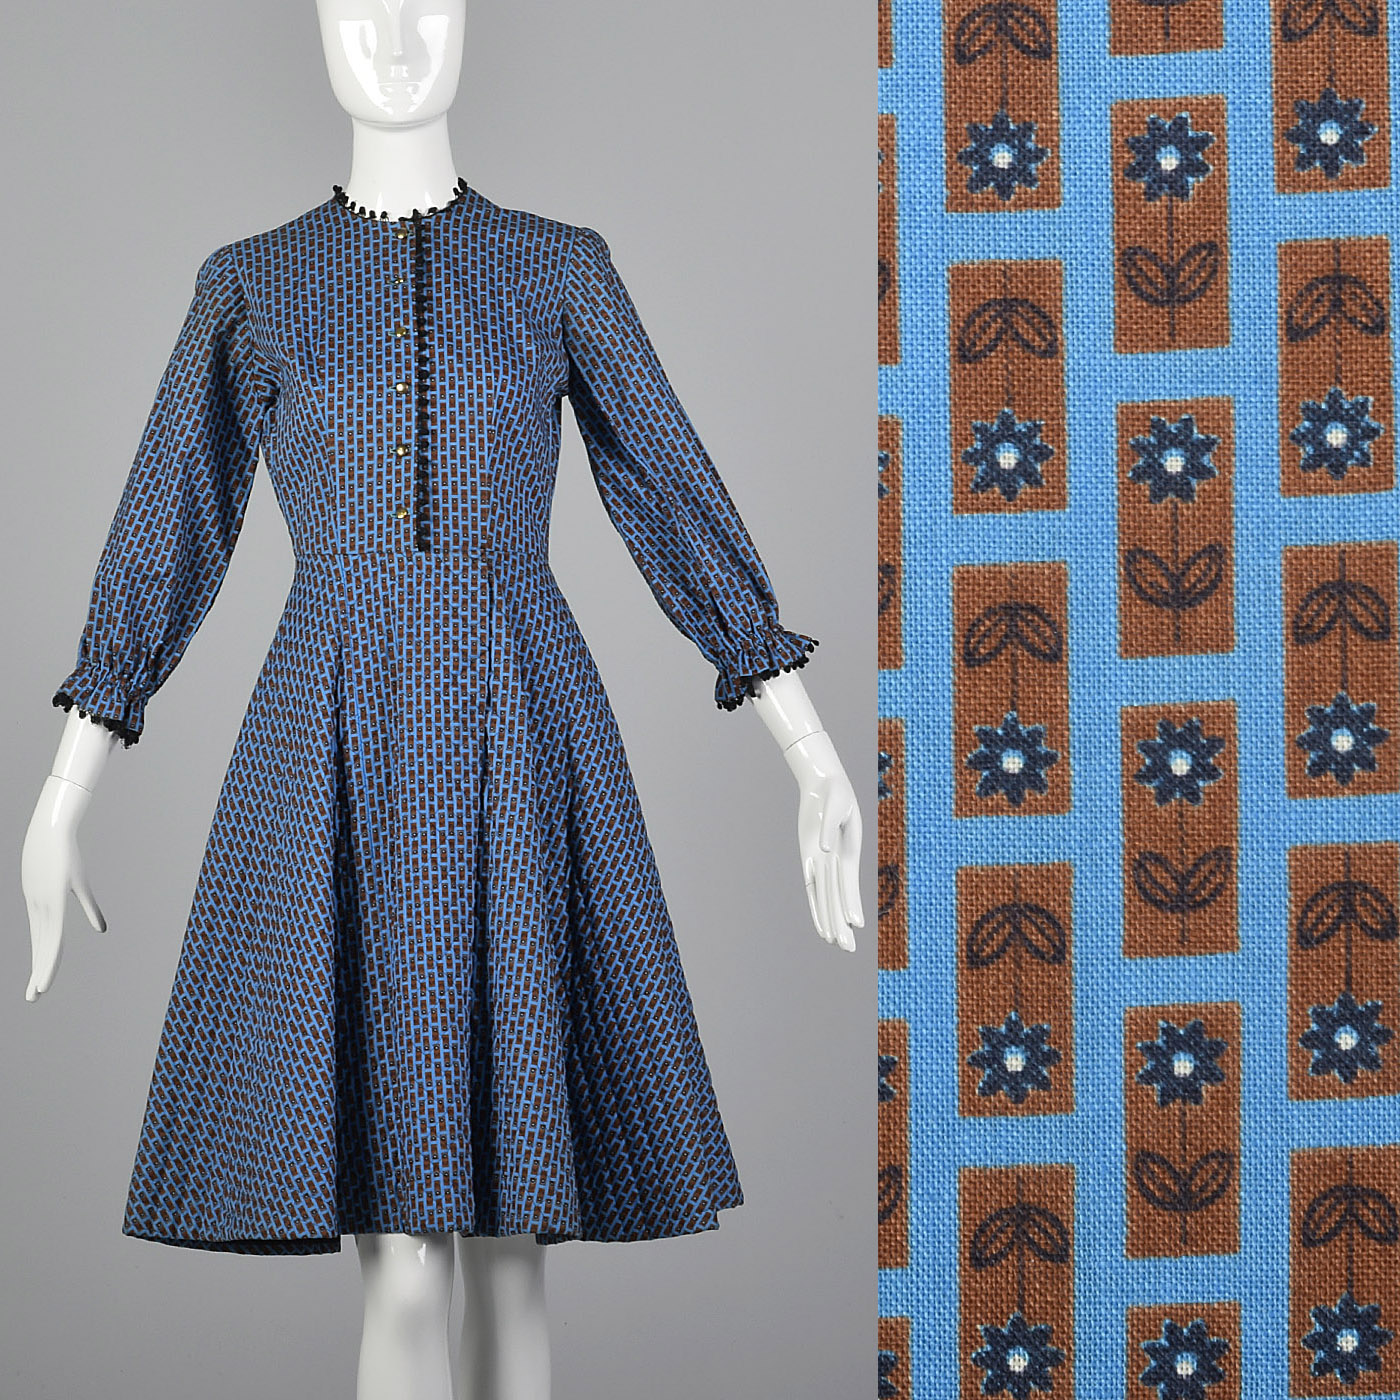 8cd52e1f266 Details about XS 1950s Quilted Blue Cotton Day Dress Casual Simple Vintage  Full Skirt 50s VTG